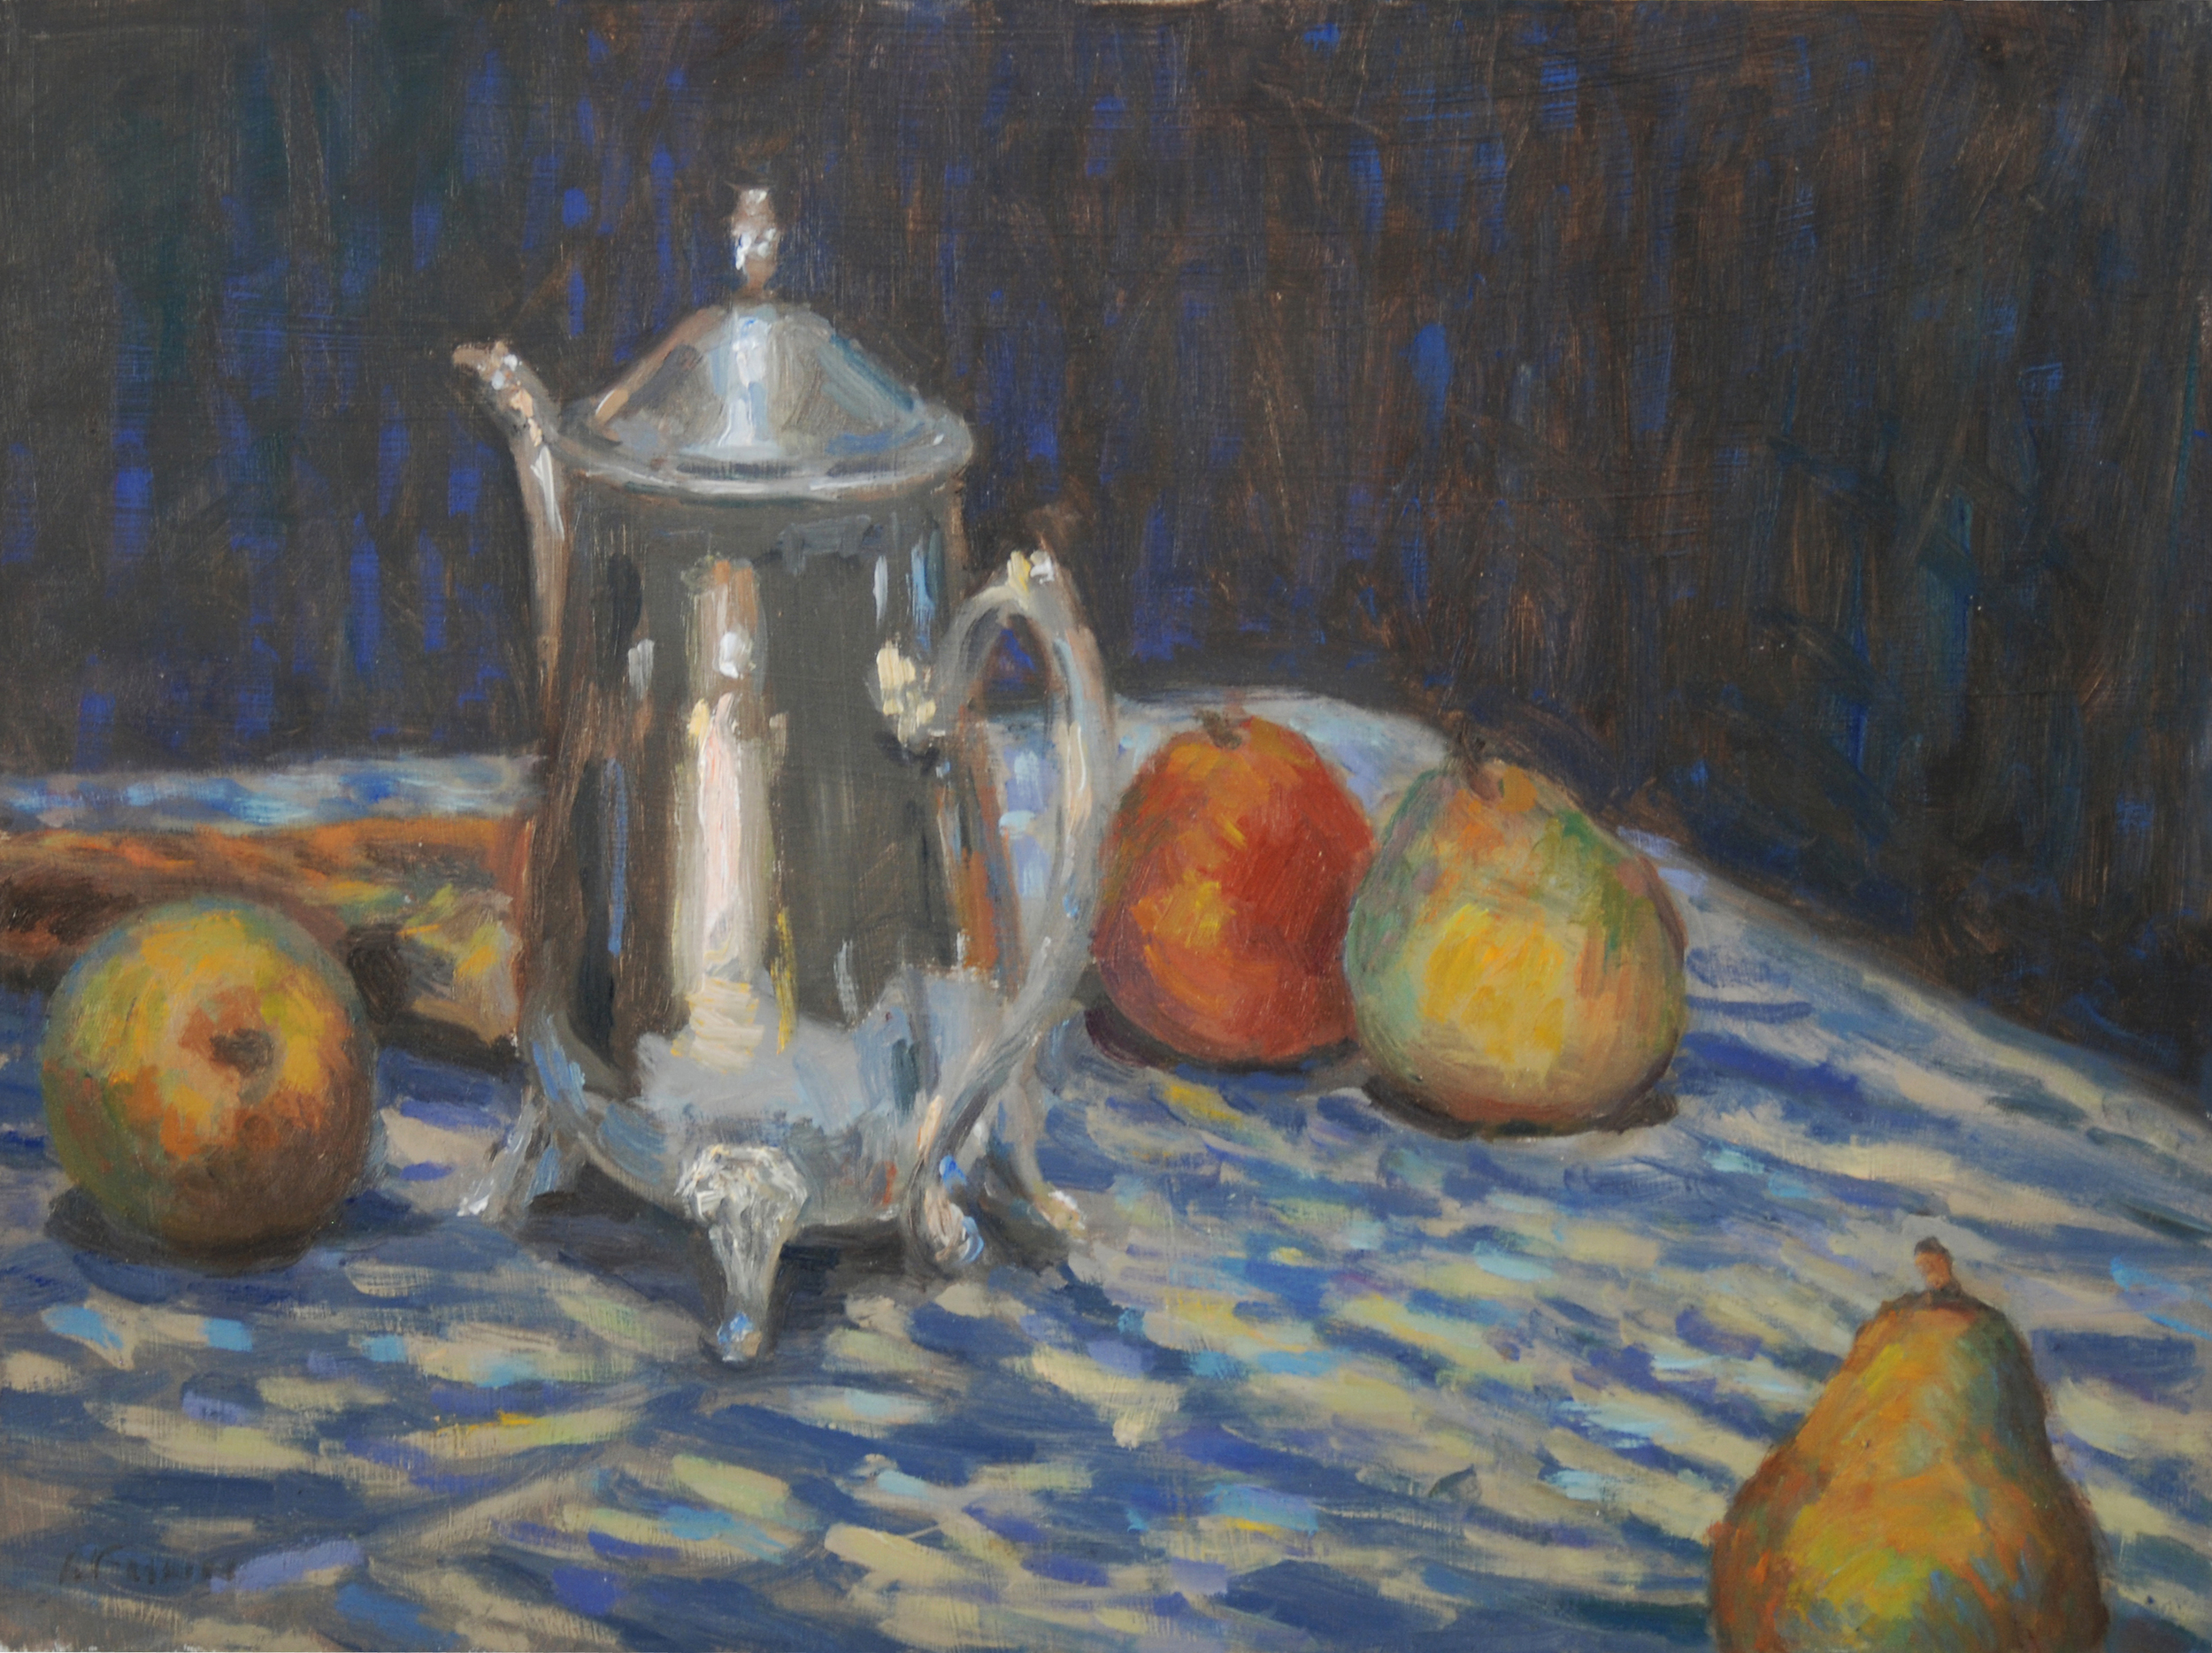 Teapot with Pears, Oil on board, 16x12 inches.